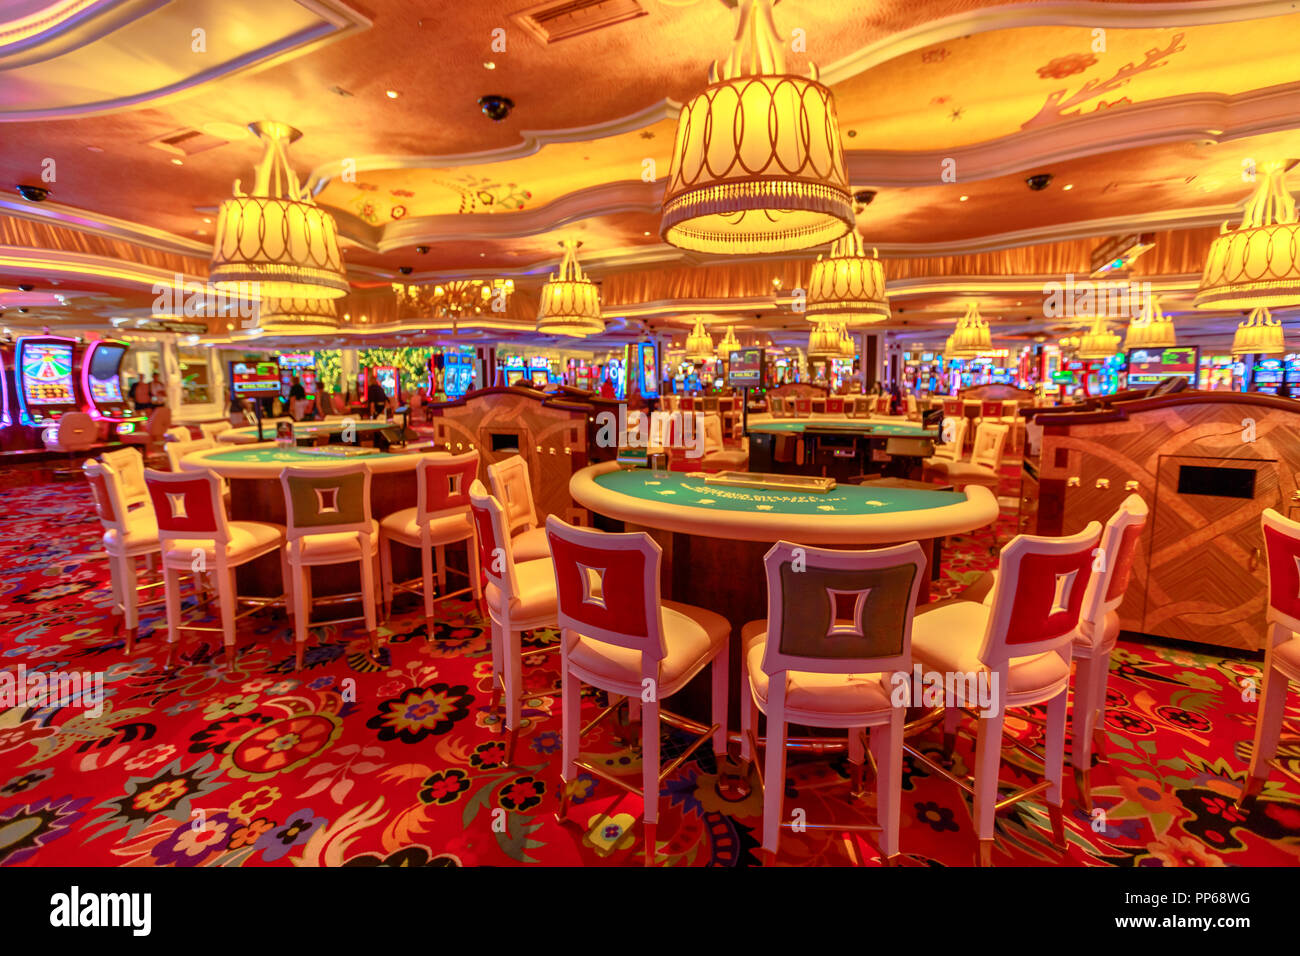 Las Vegas, Nevada, United States - August 18, 2018: blackjack tables and slot machine inside the luxurious Wynn Las Vegas Resort Hotel, a 5-star, themed Paradise in Las Vegas Strip. - Stock Image